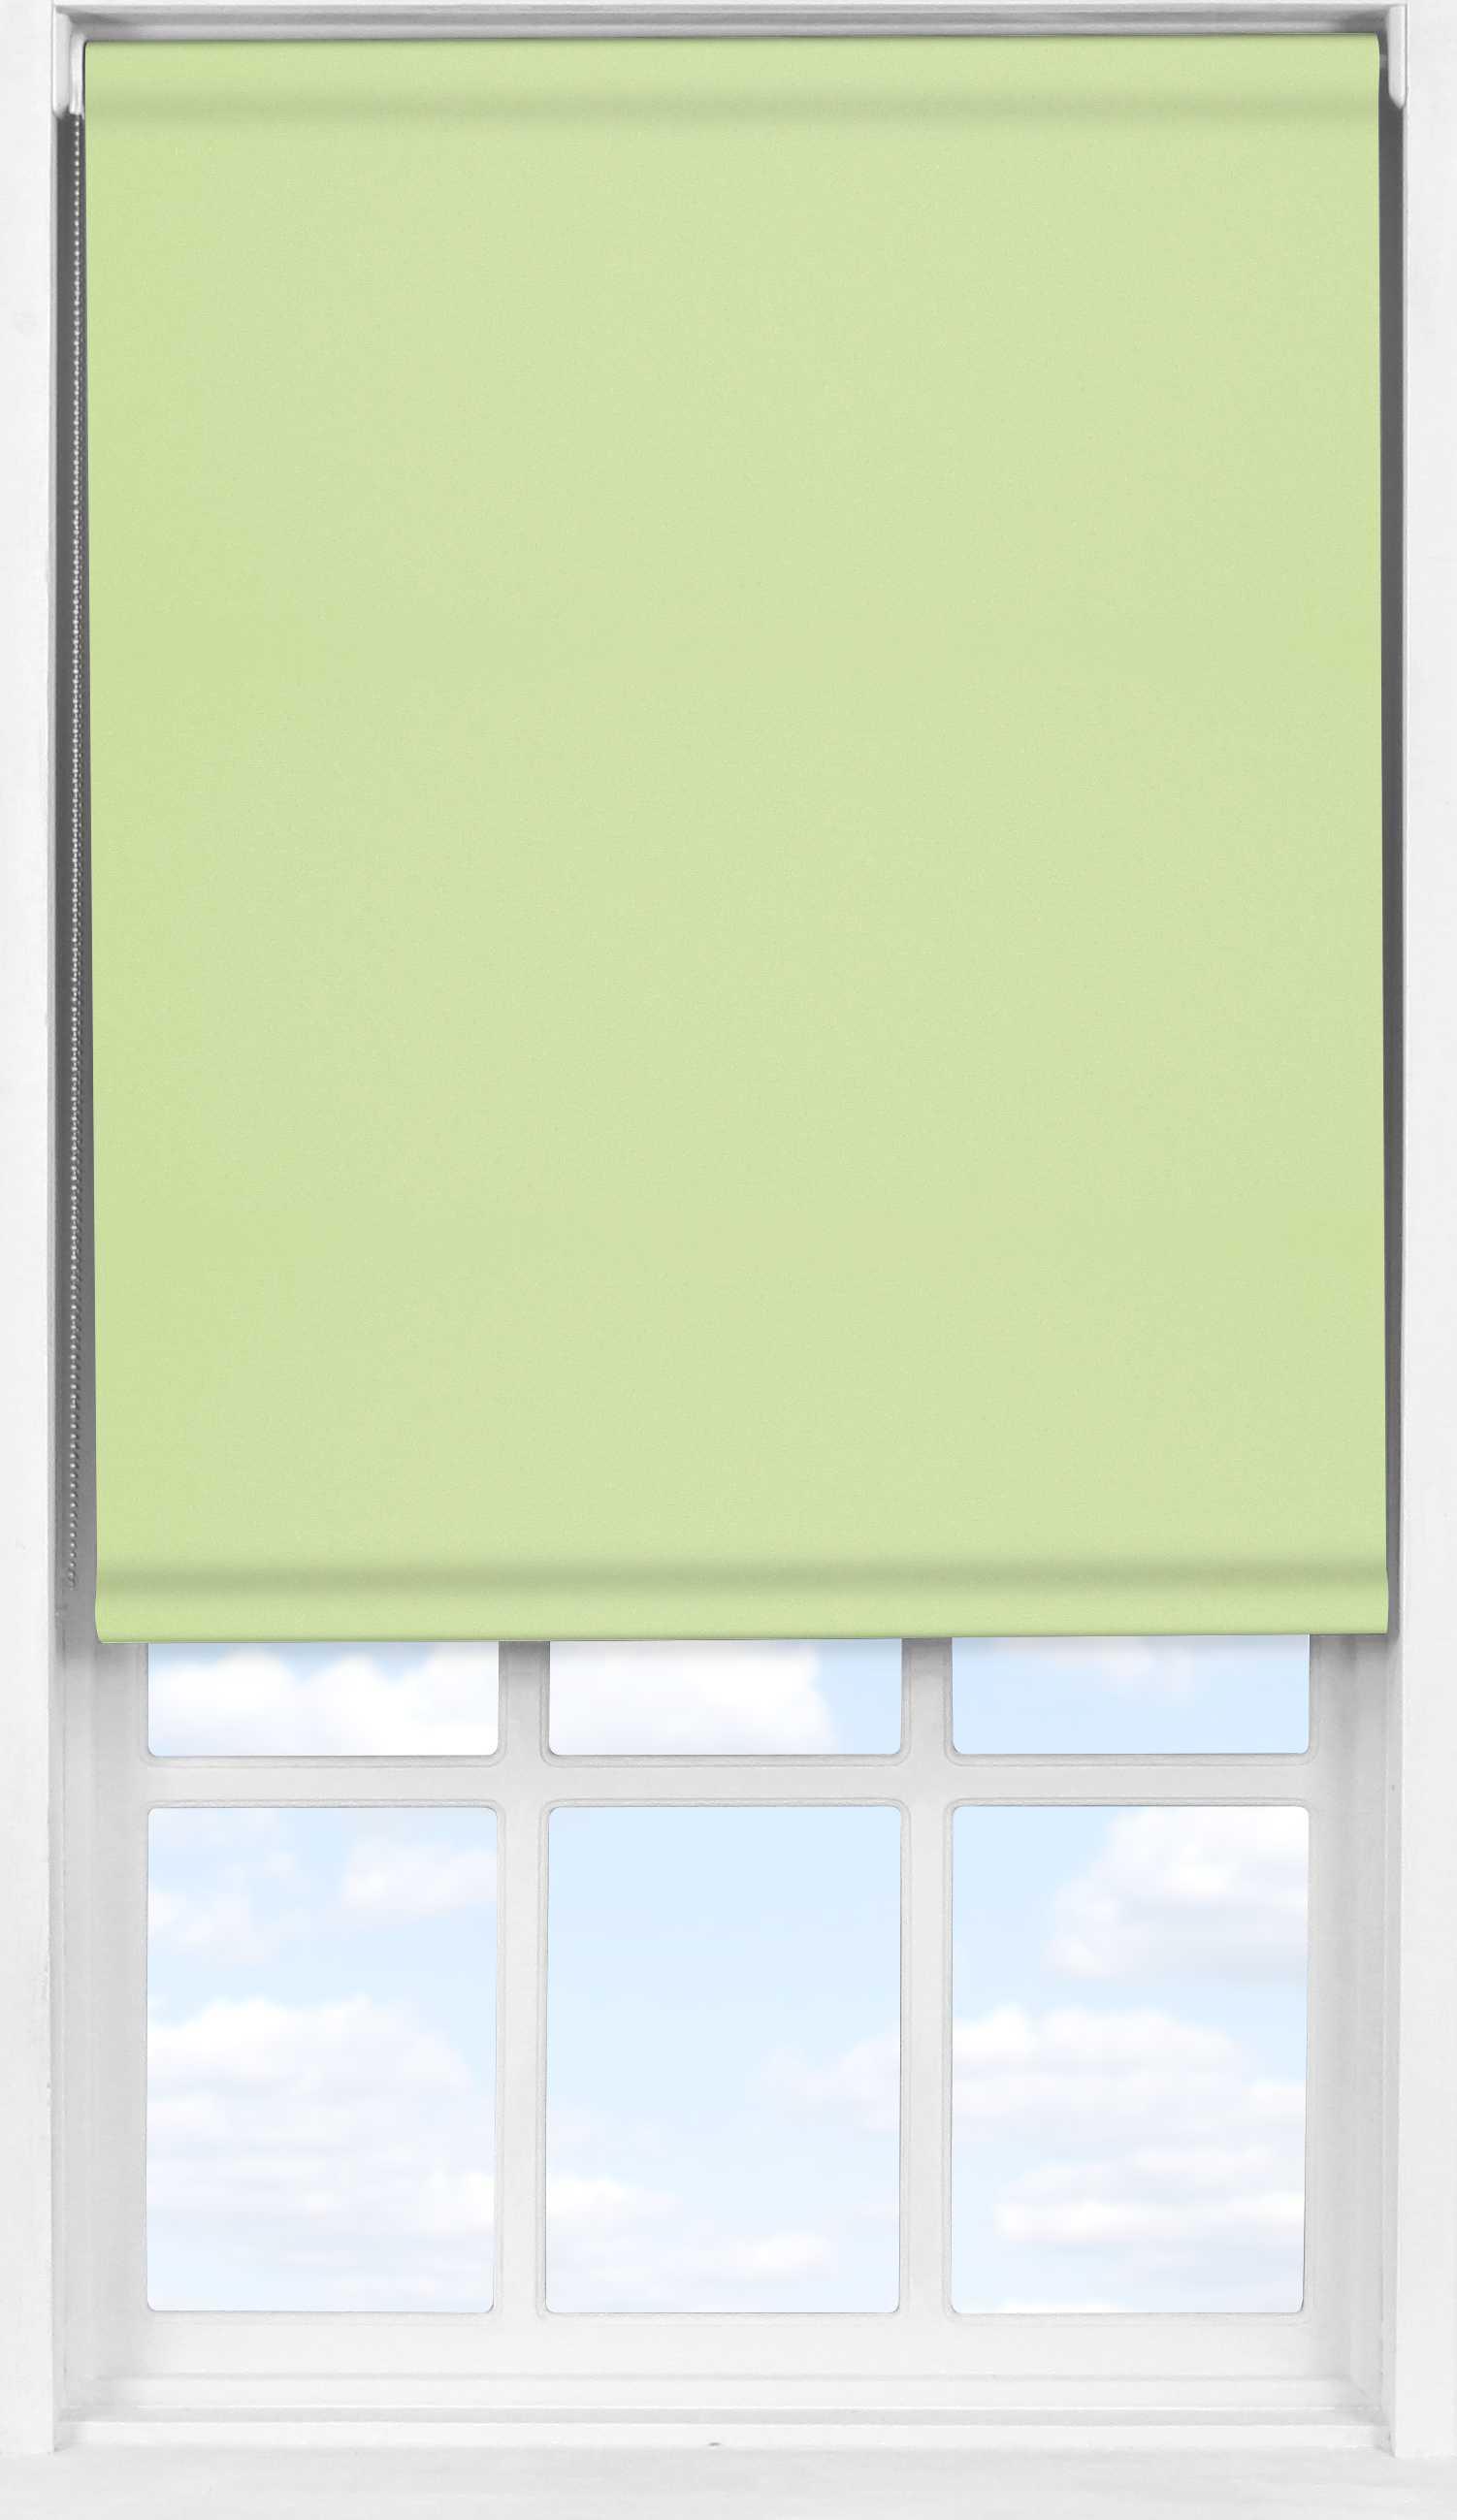 Easifit Roller Blind in Light Green Translucent